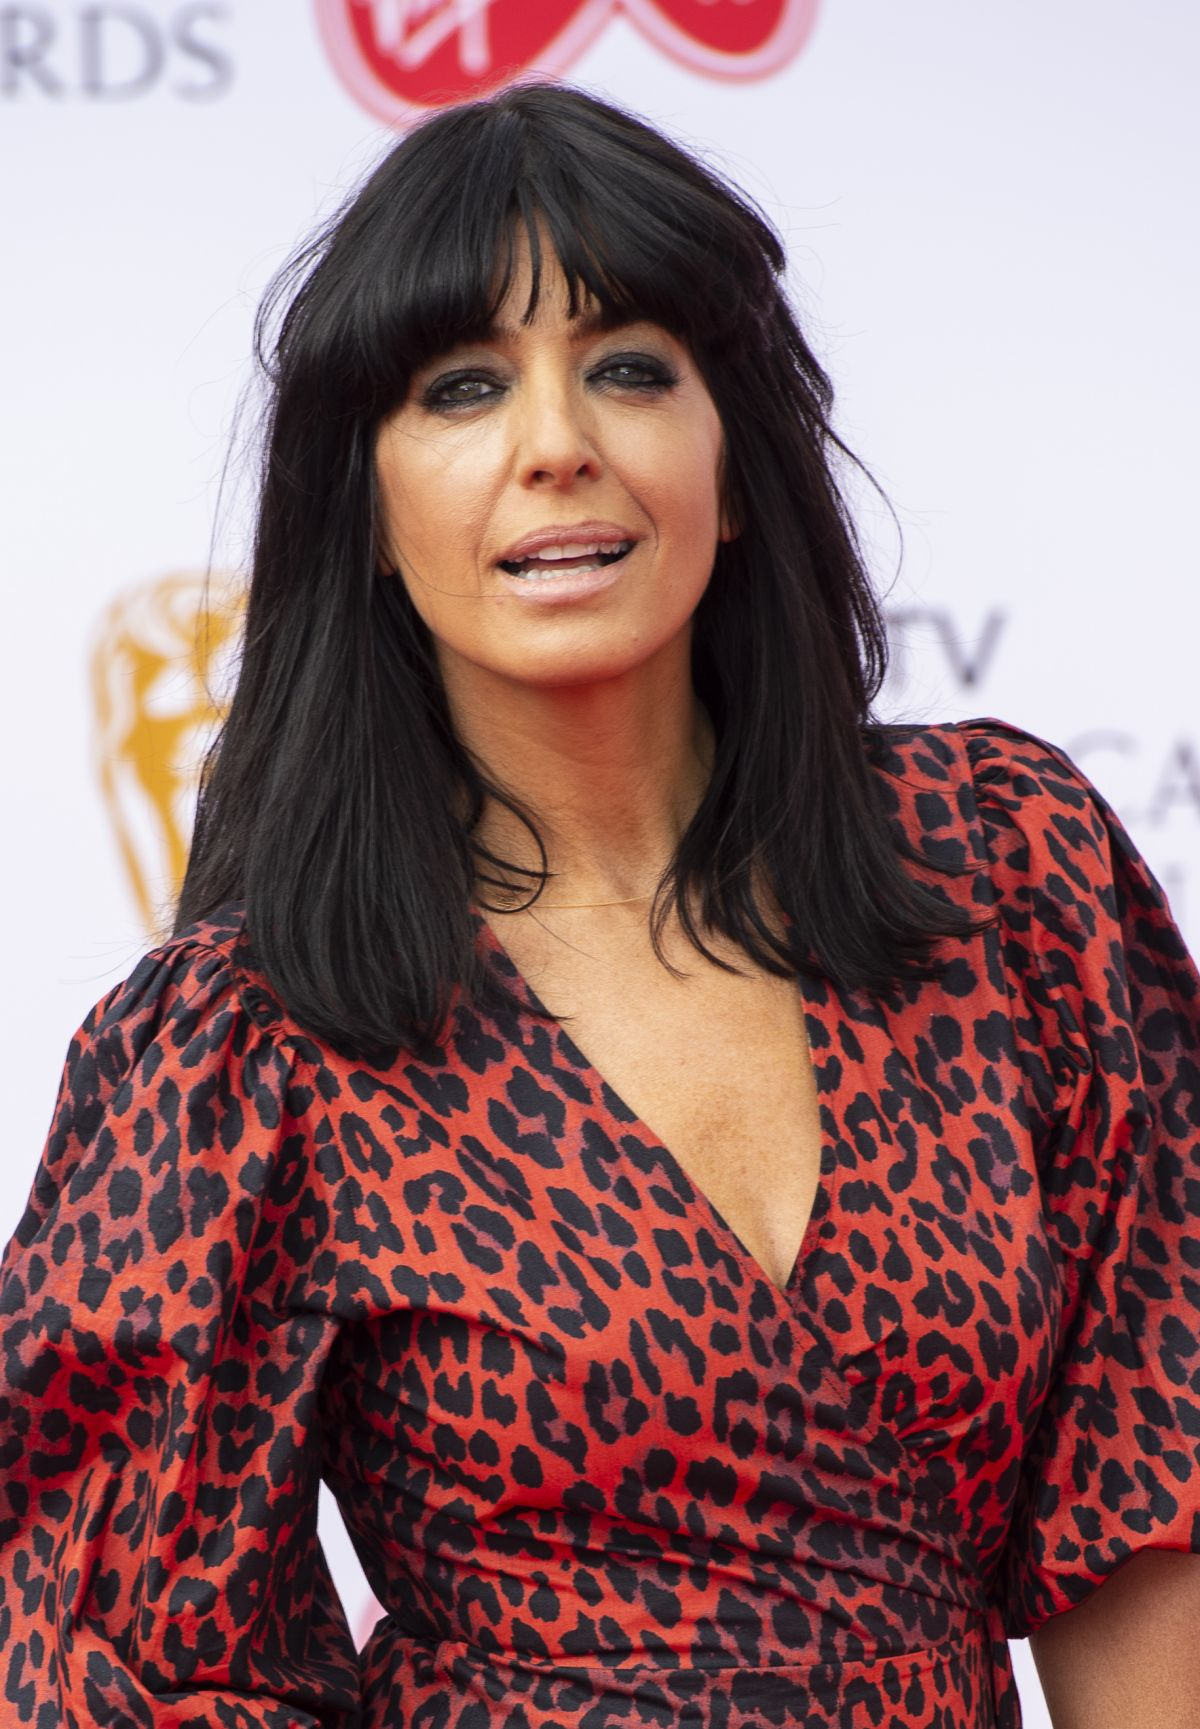 Pics Claudia Winkleman naked (19 photo), Ass, Hot, Boobs, in bikini 2020